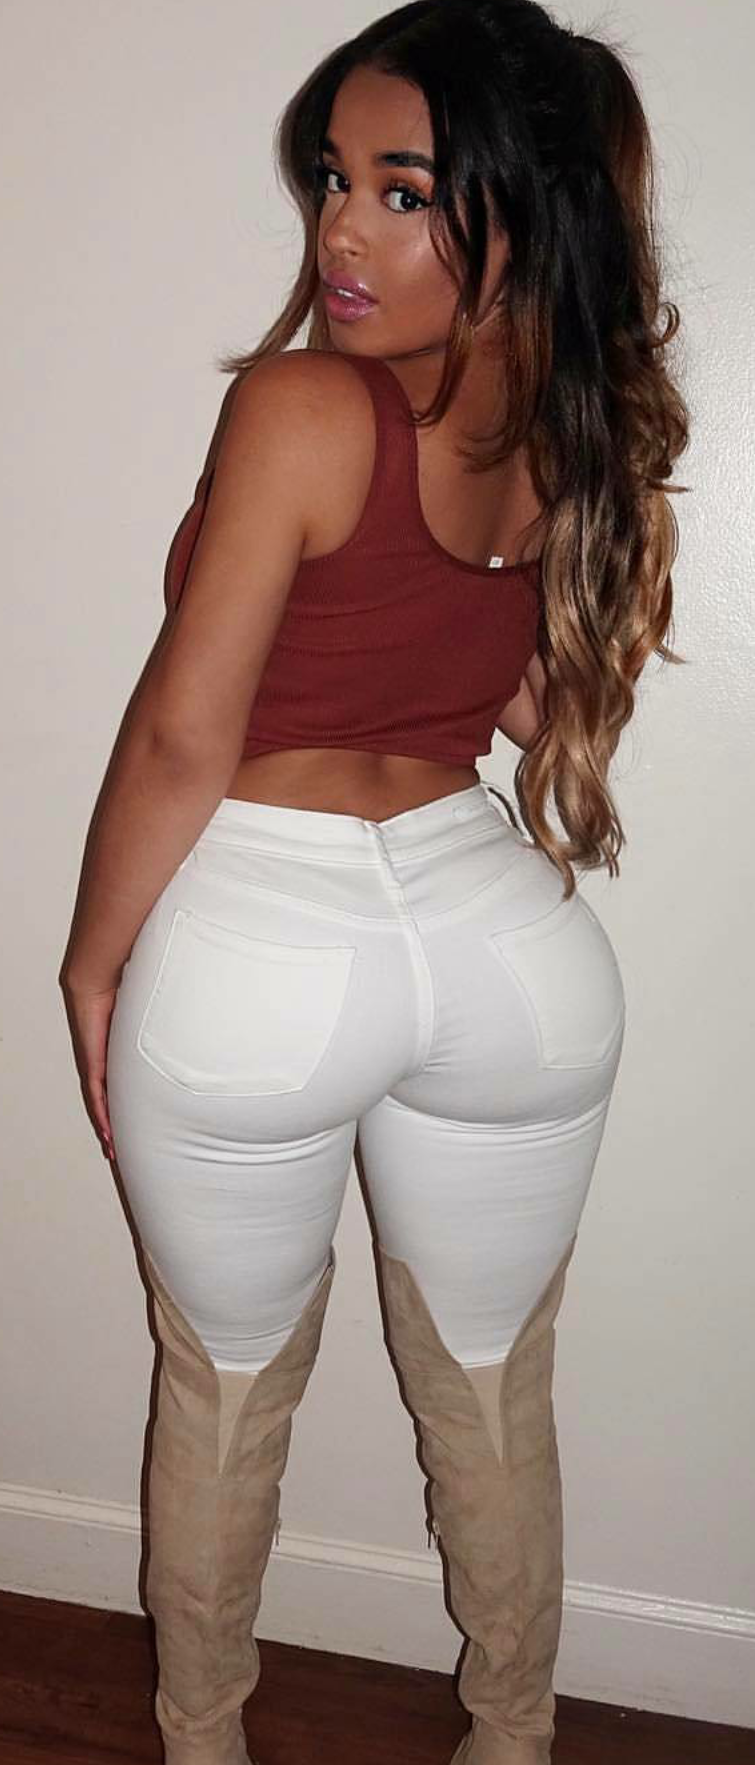 Giselle Big Ass photo 14